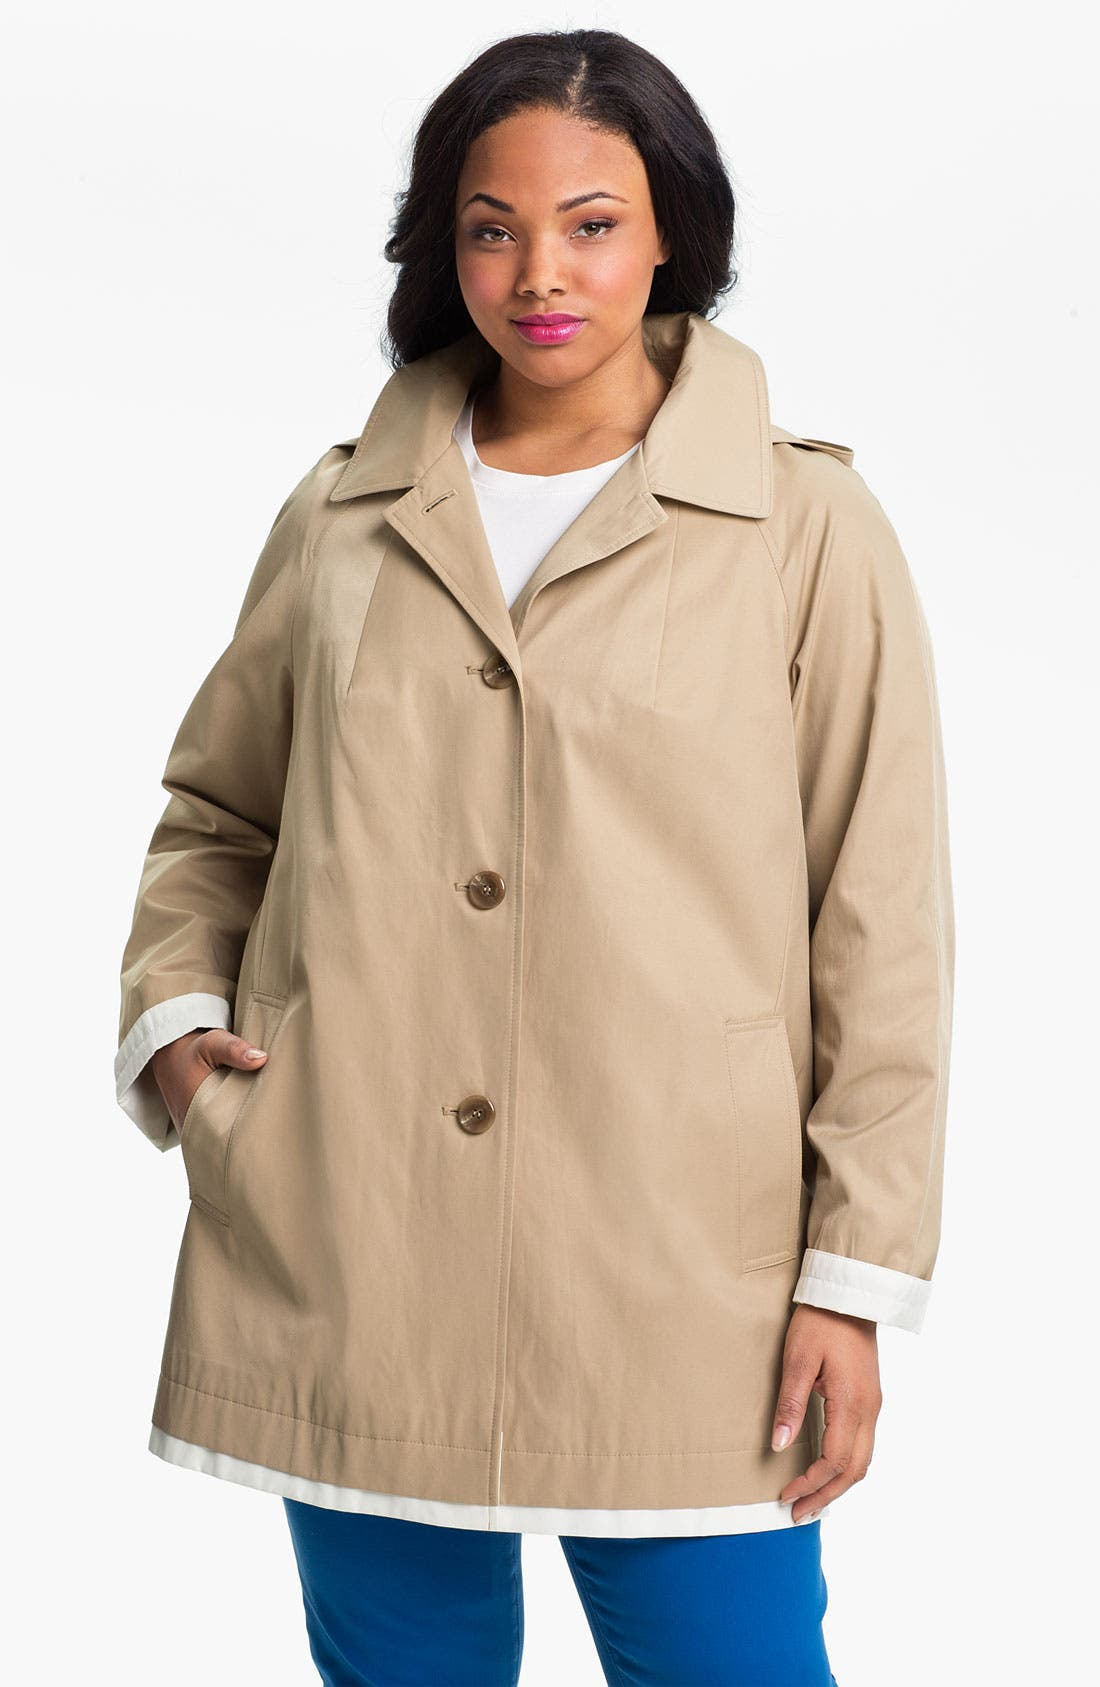 Alternate Image 1 Selected - Gallery Contrast Trim A-Line Coat (Plus Size)